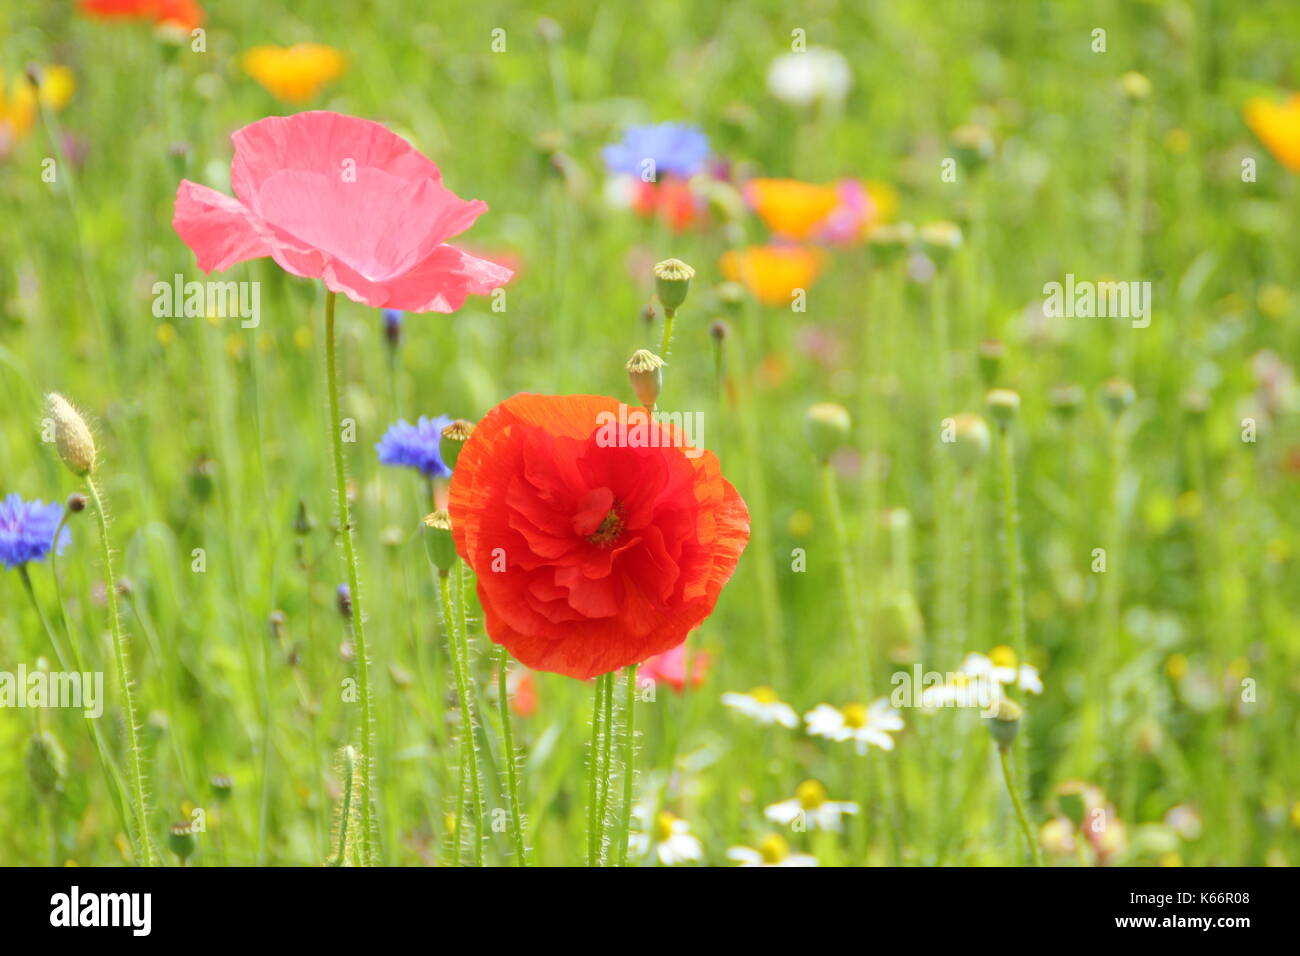 True Shirley poppies (Papaver rhoeas), with silken petals and pastel colours in a cultivated wildflower meadow at the height of an English summer Stock Photo